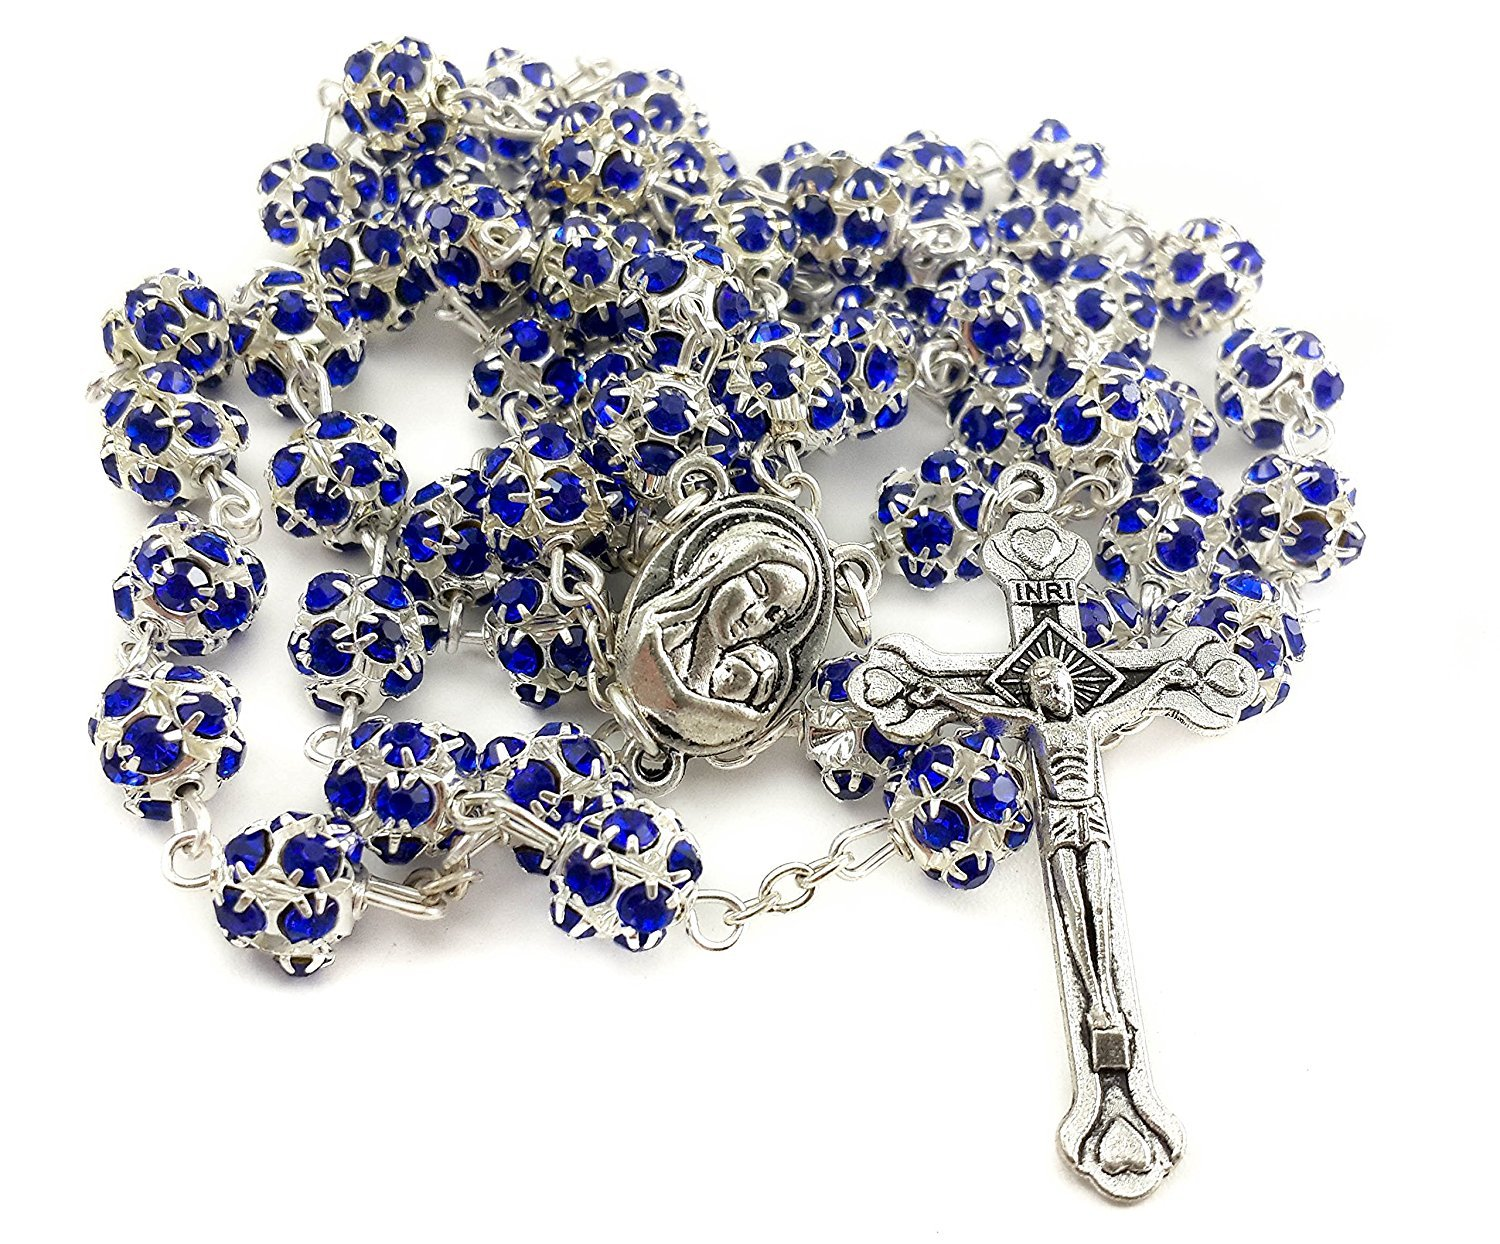 Catholic Rosary Blue Crystallized Beads Necklace with Holy Soil Medal & Metal Cross